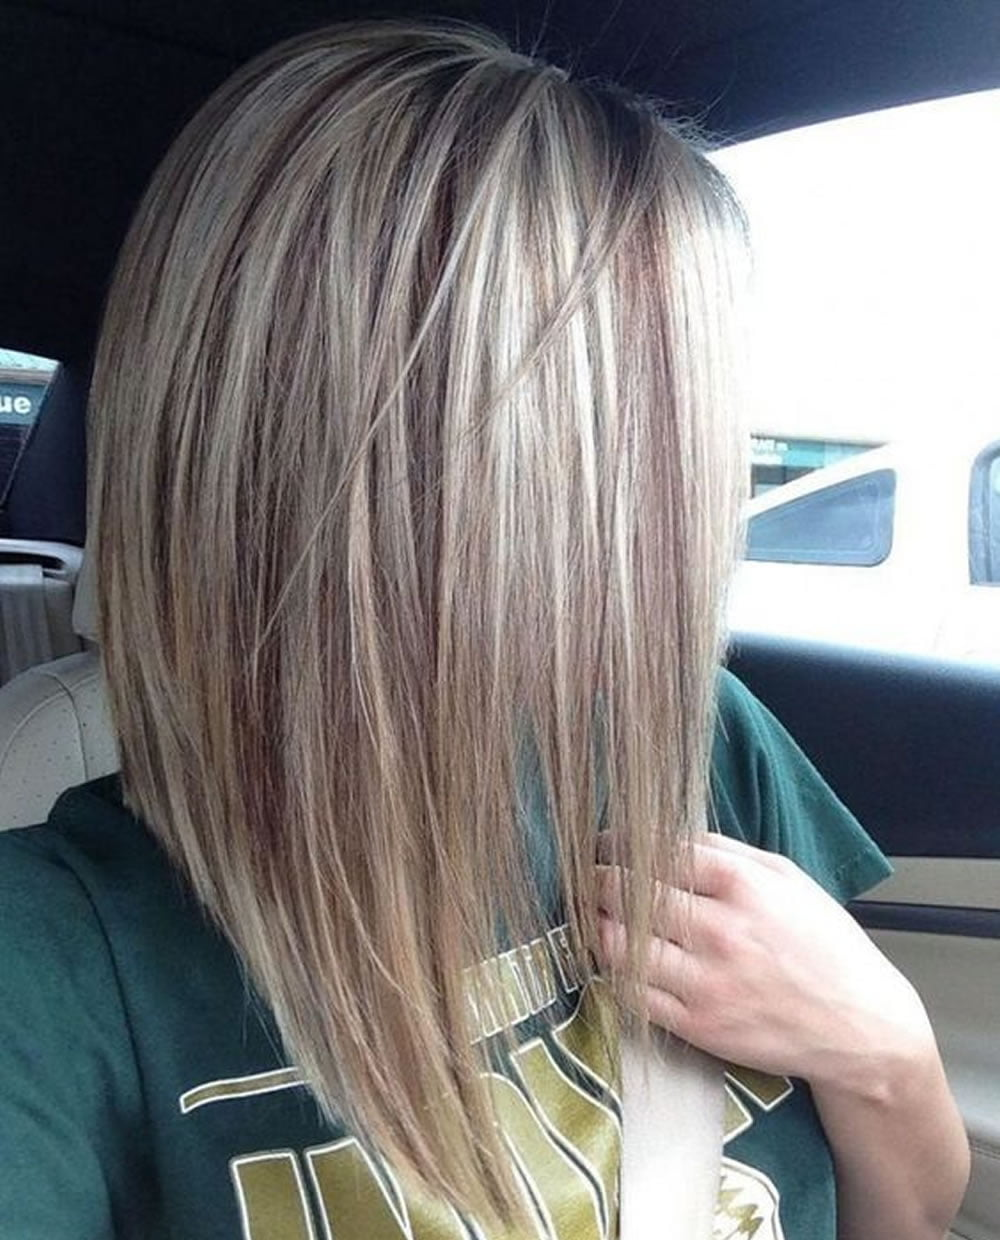 25 layered long bob hairstyles and lob haircuts 2018 page 5 hairstyles. Black Bedroom Furniture Sets. Home Design Ideas